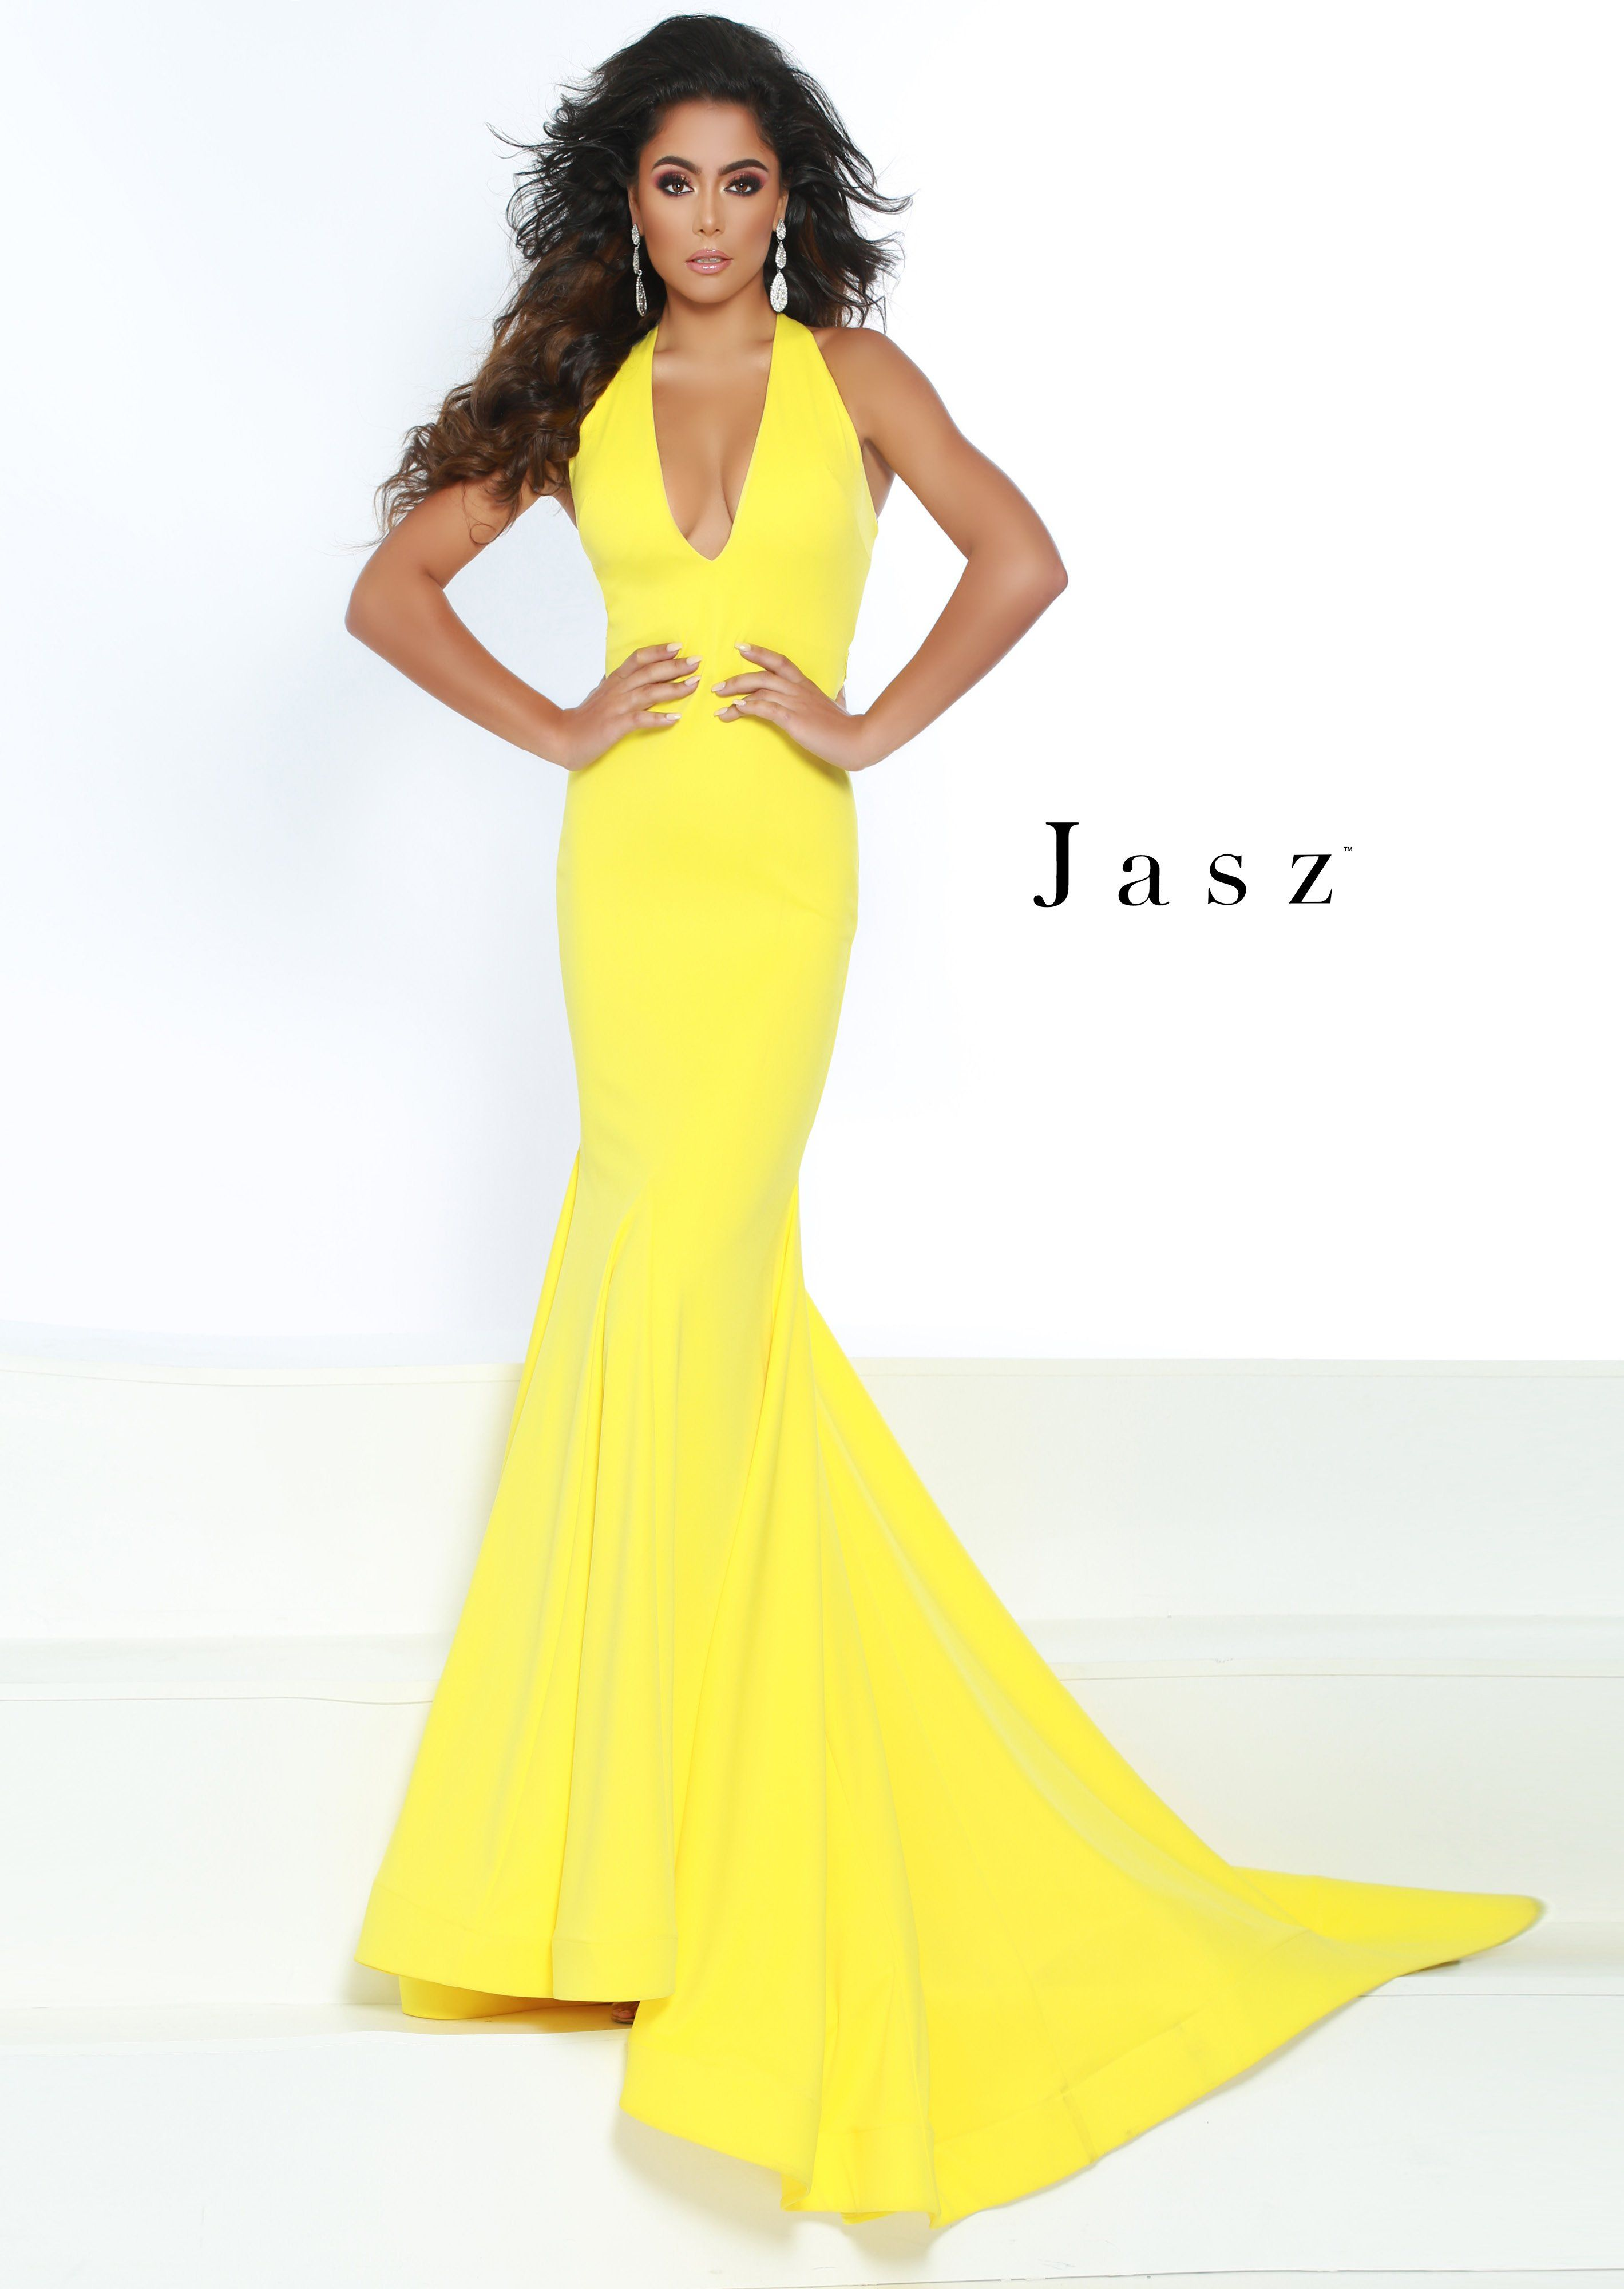 cdea3b1b80 Jasz Couture 6414 Yellow V-Neck Open-Back Fit and Flare Prom Dress ...